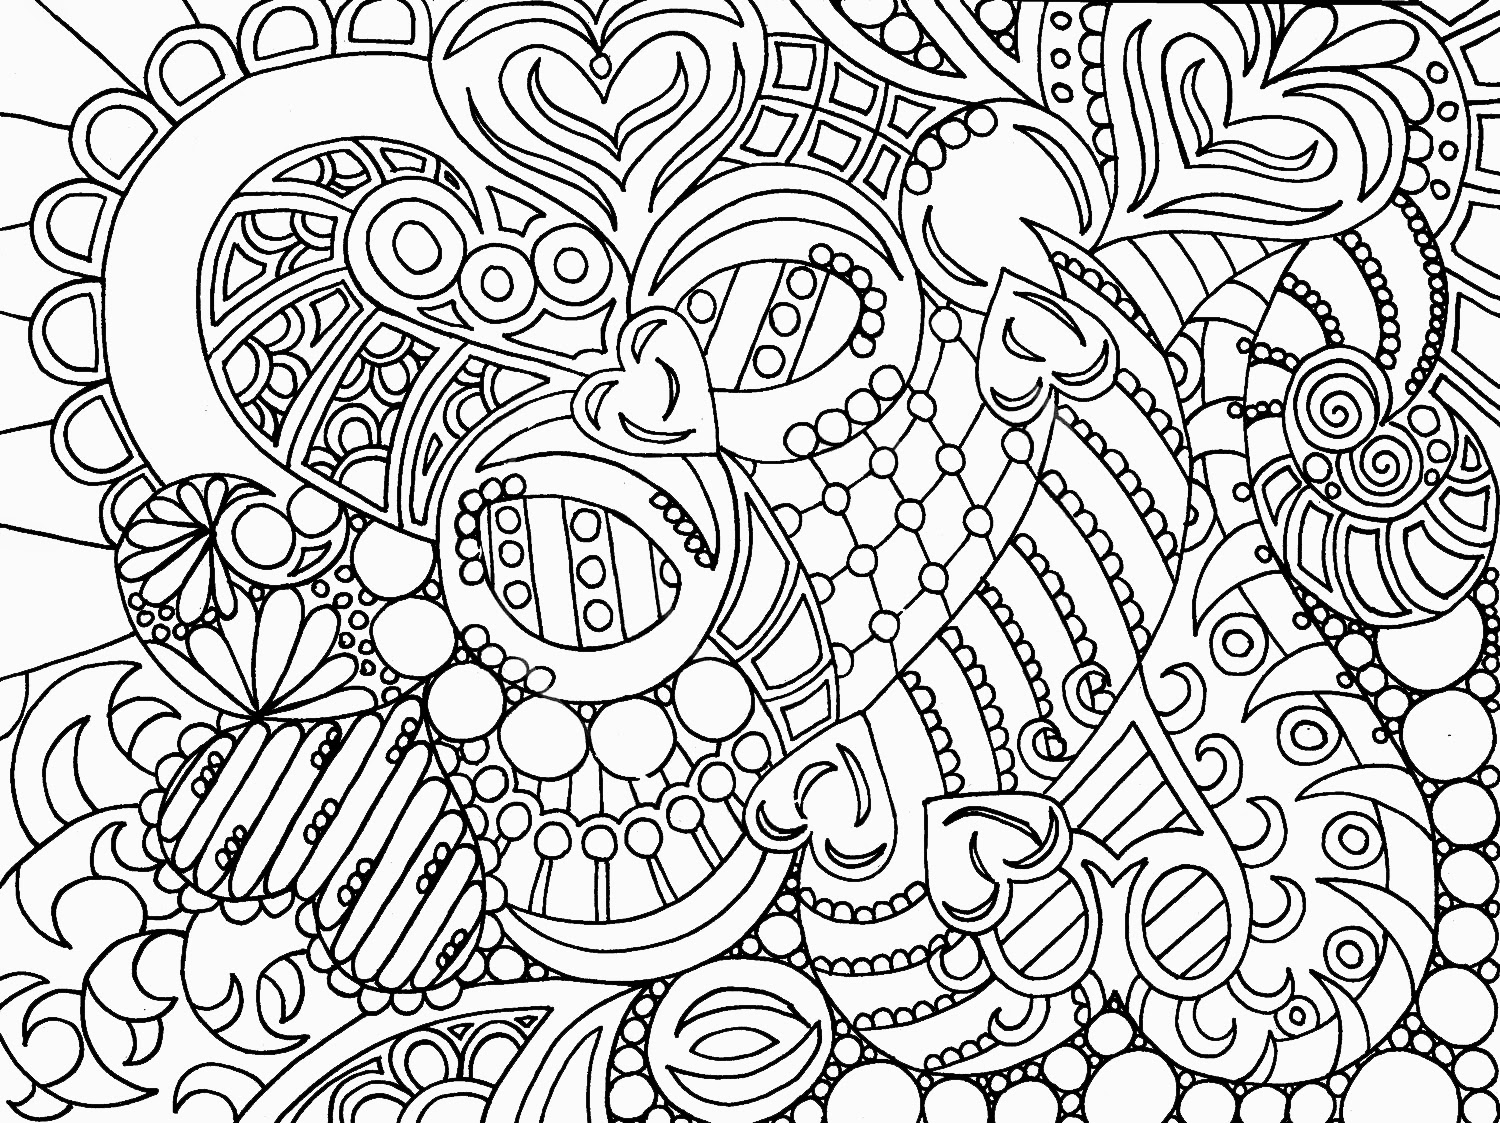 1500x1123 Abstract Coloring Pages To Download And Print For Free